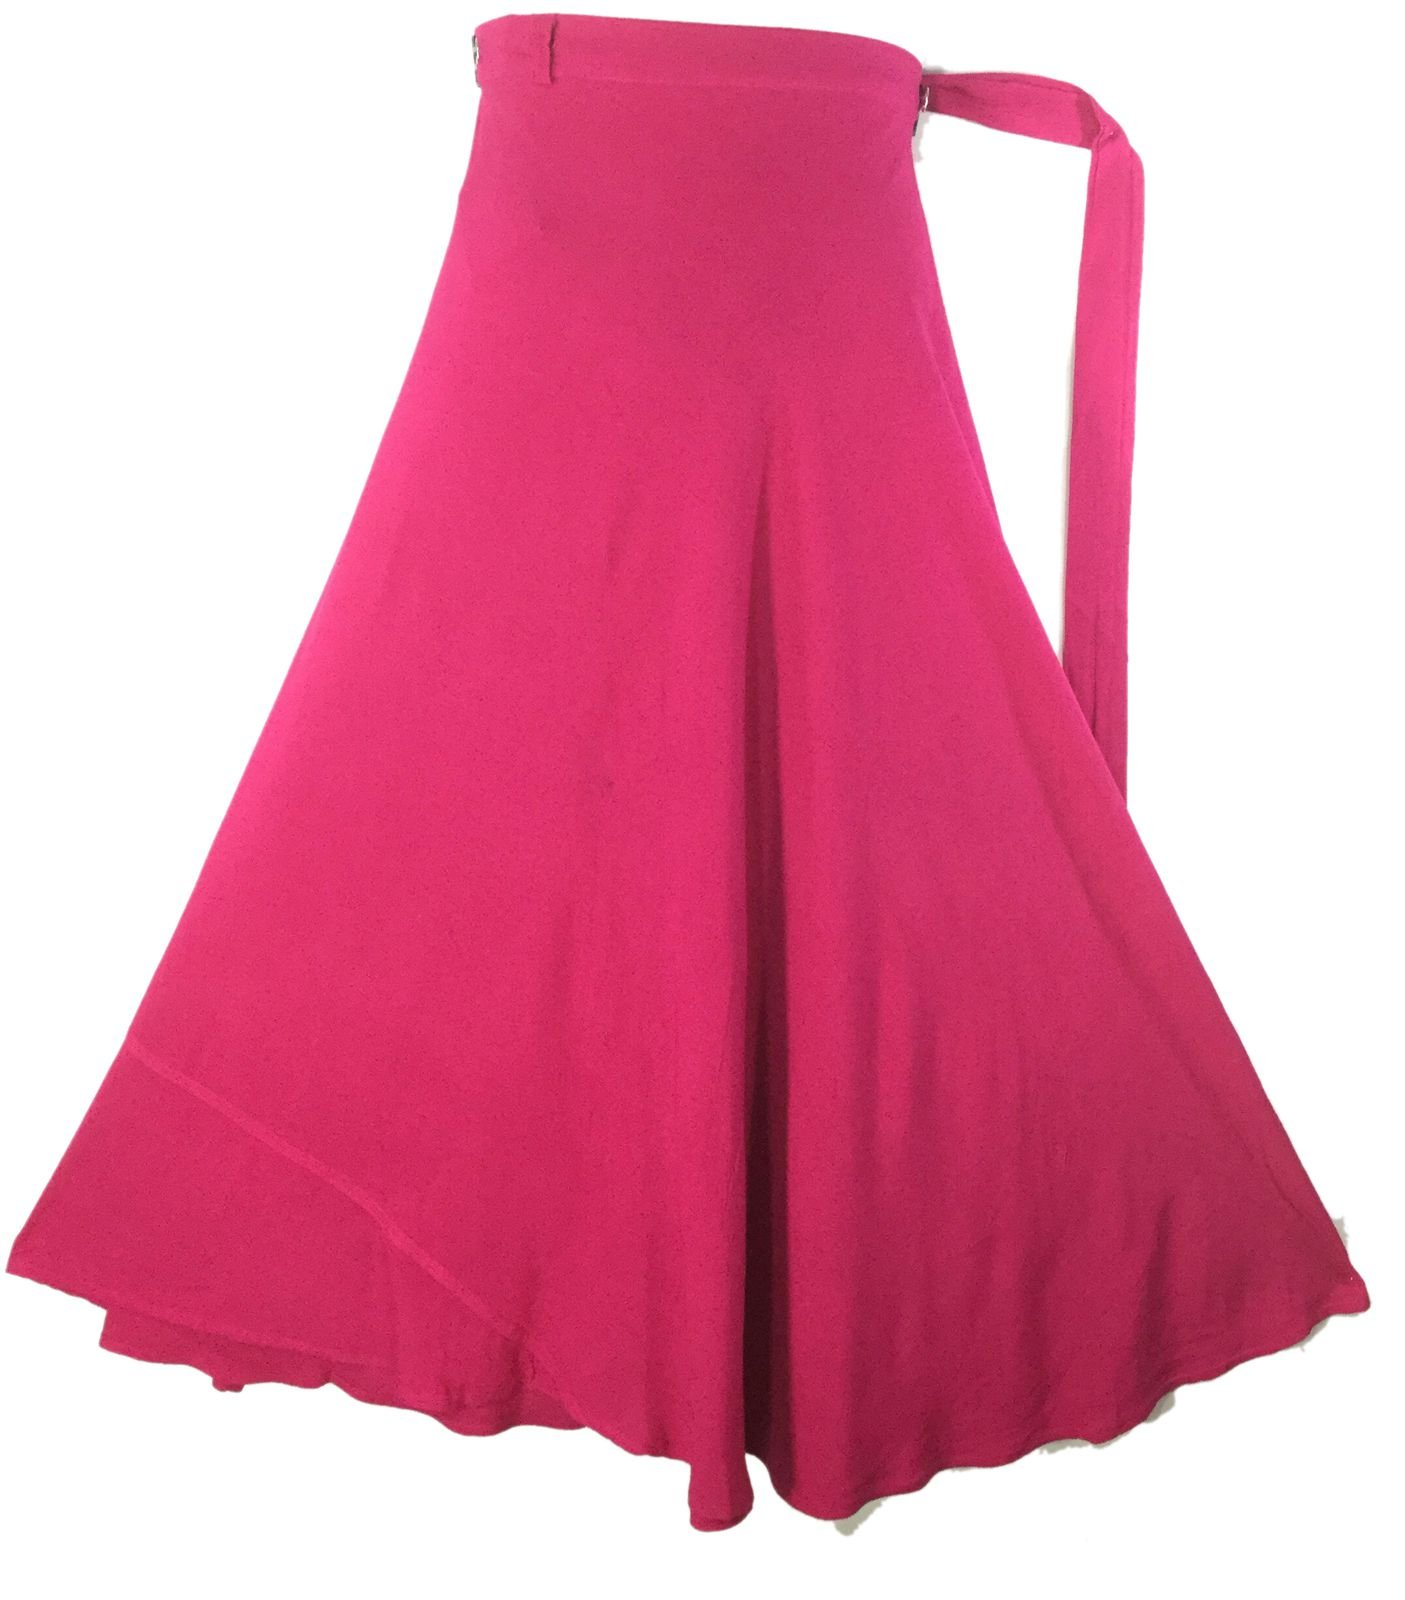 Decoraapparel Wrap Around Skirts African Women's Skirt Rayon Maxi Bright Color Skirt